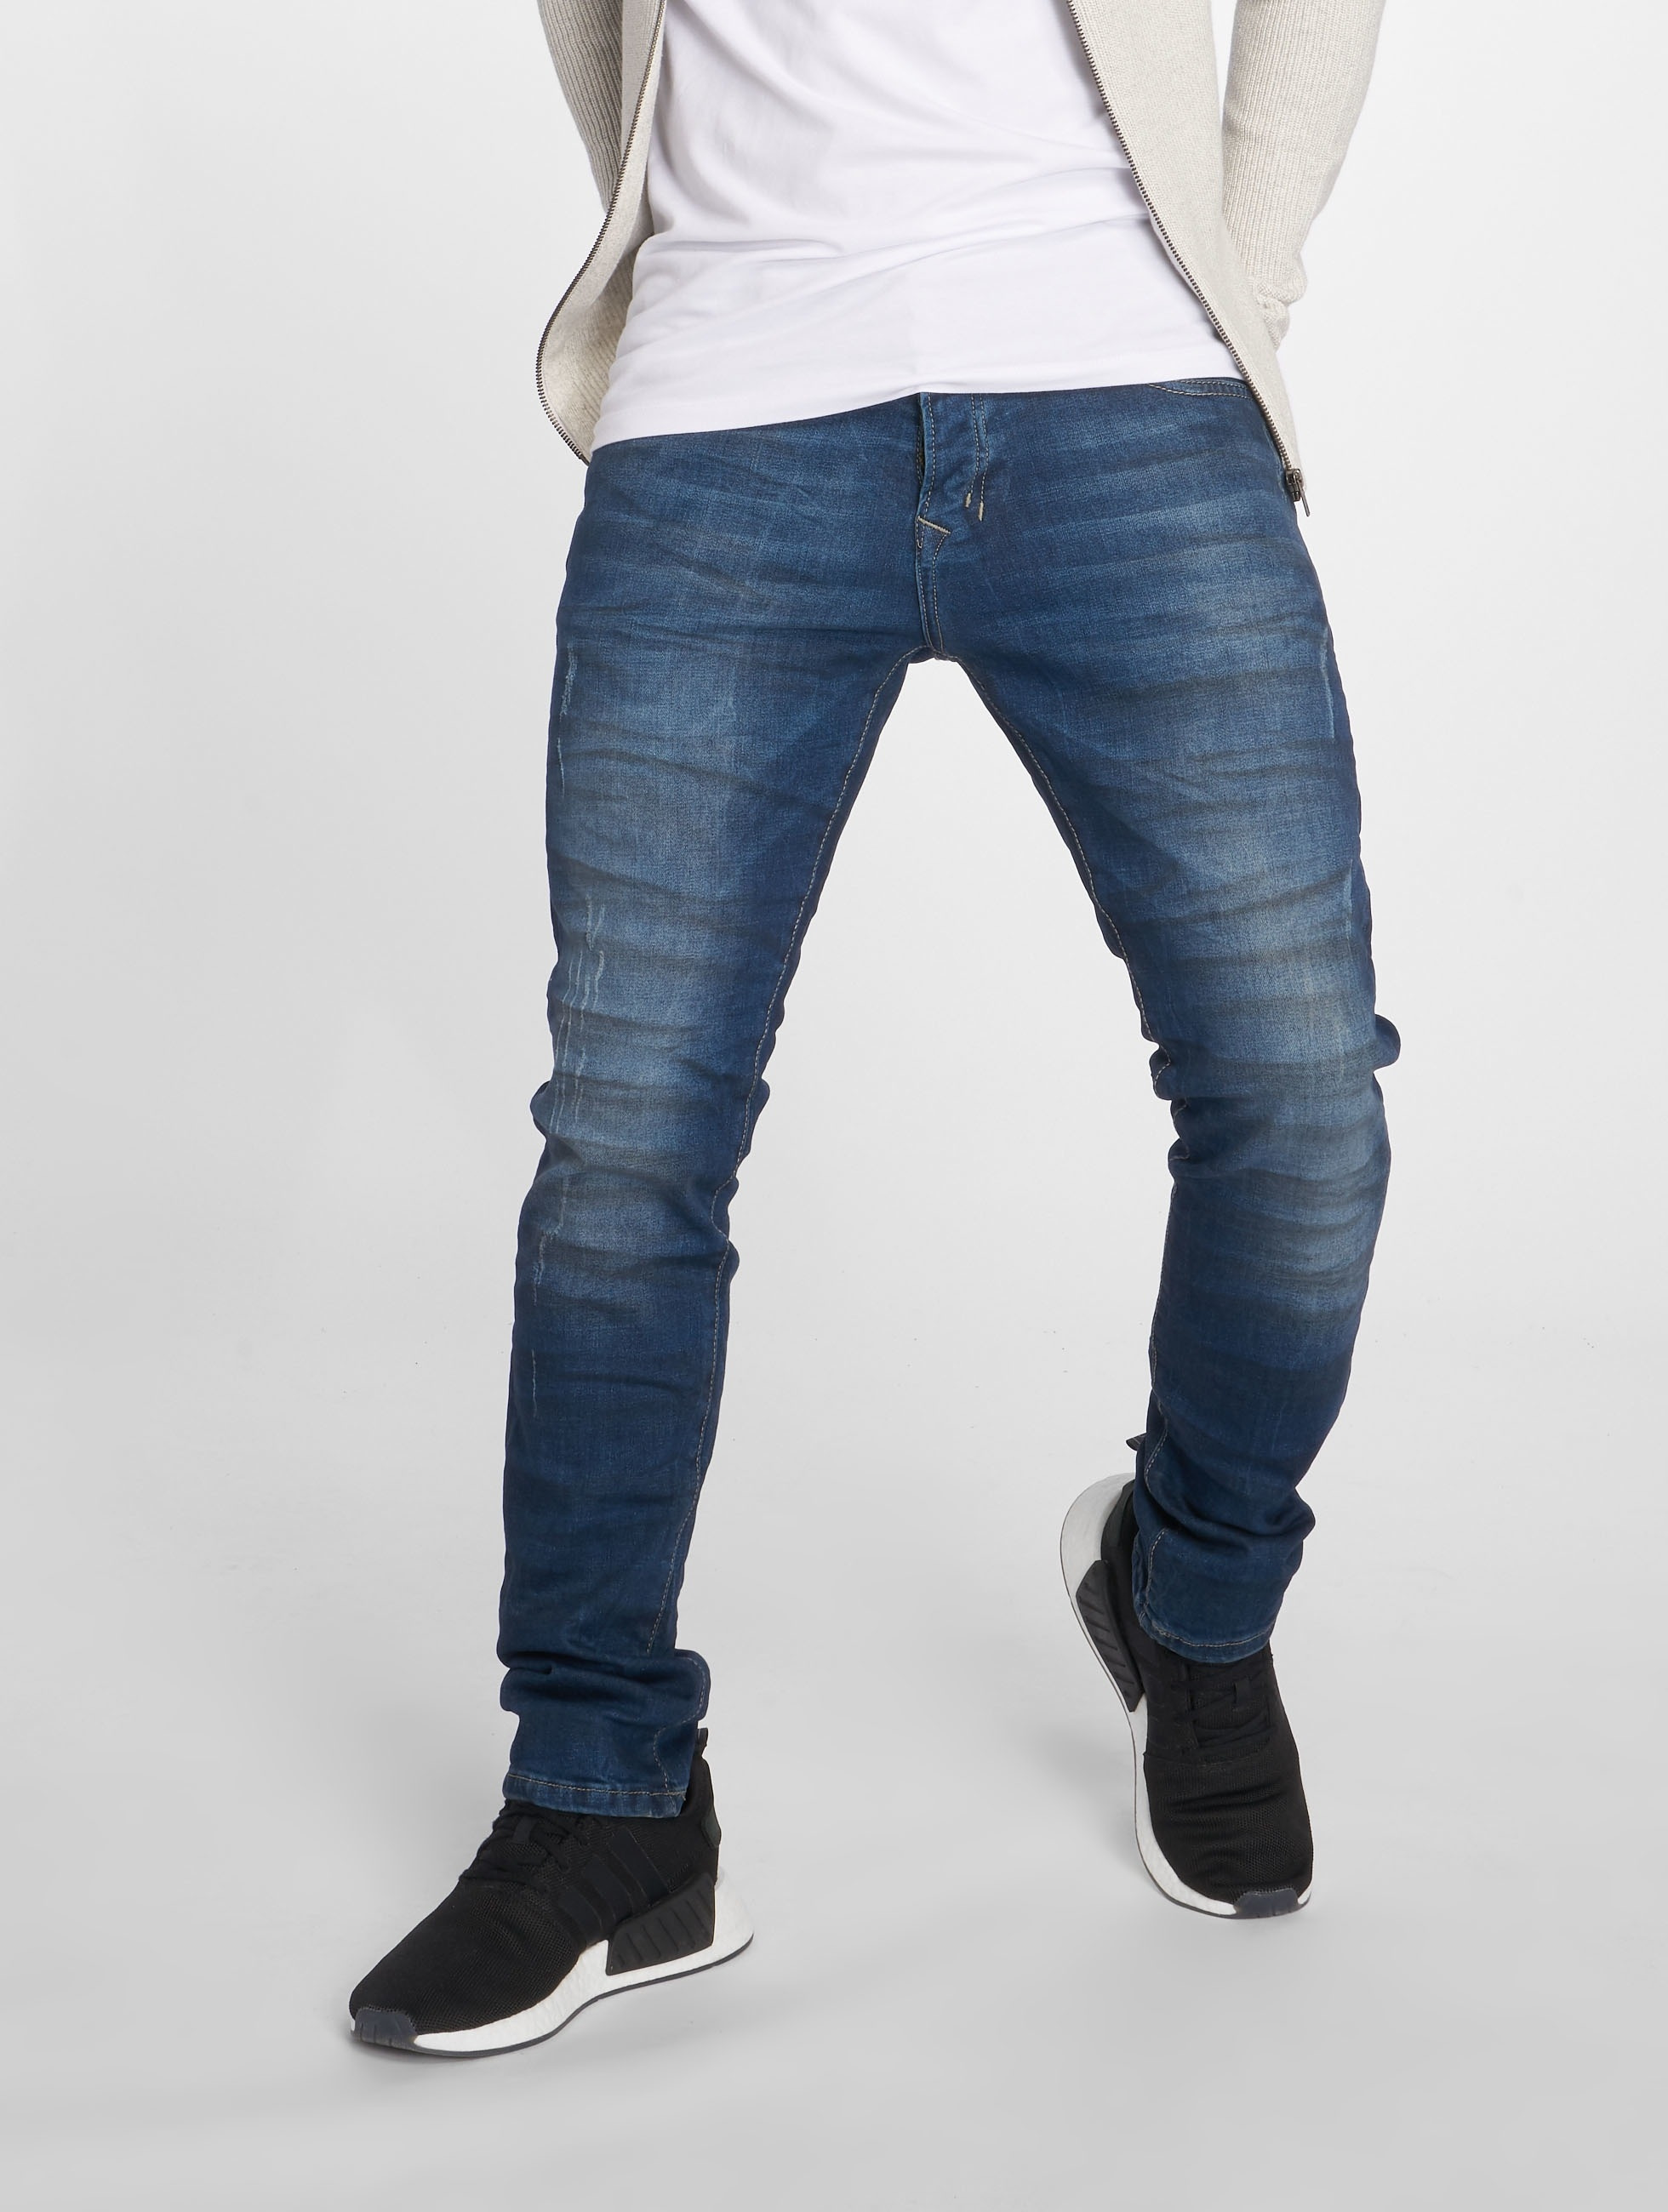 2Y / Slim Fit Jeans Duarte in blue W 31